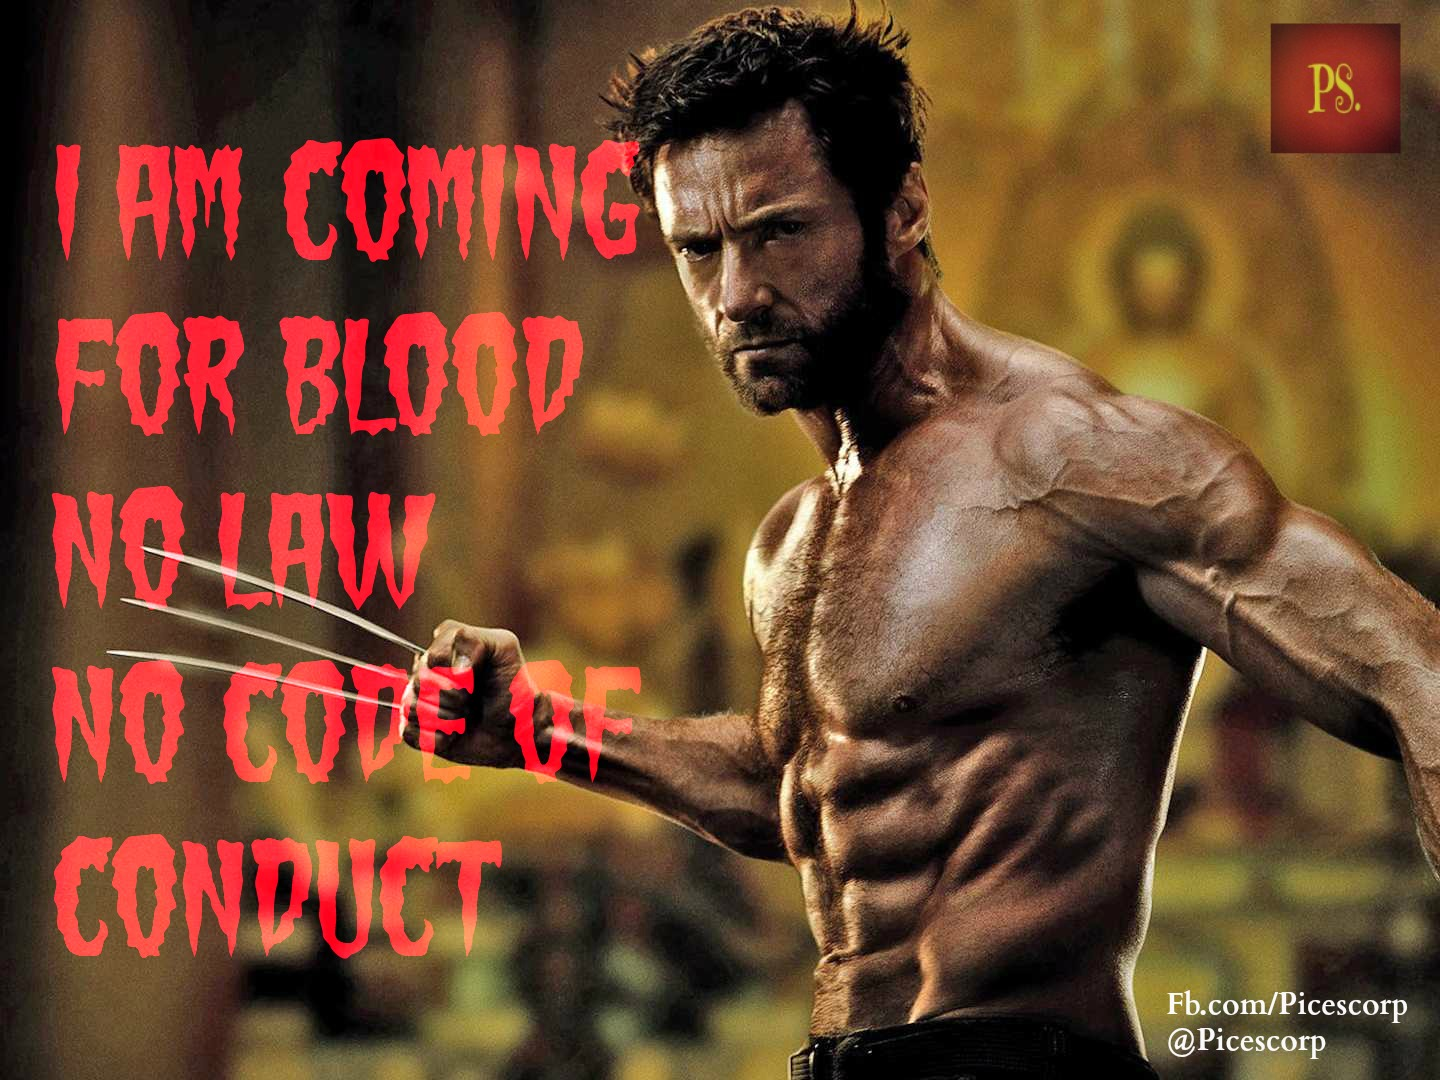 I am coming for Blood No Law No Code of Conduct